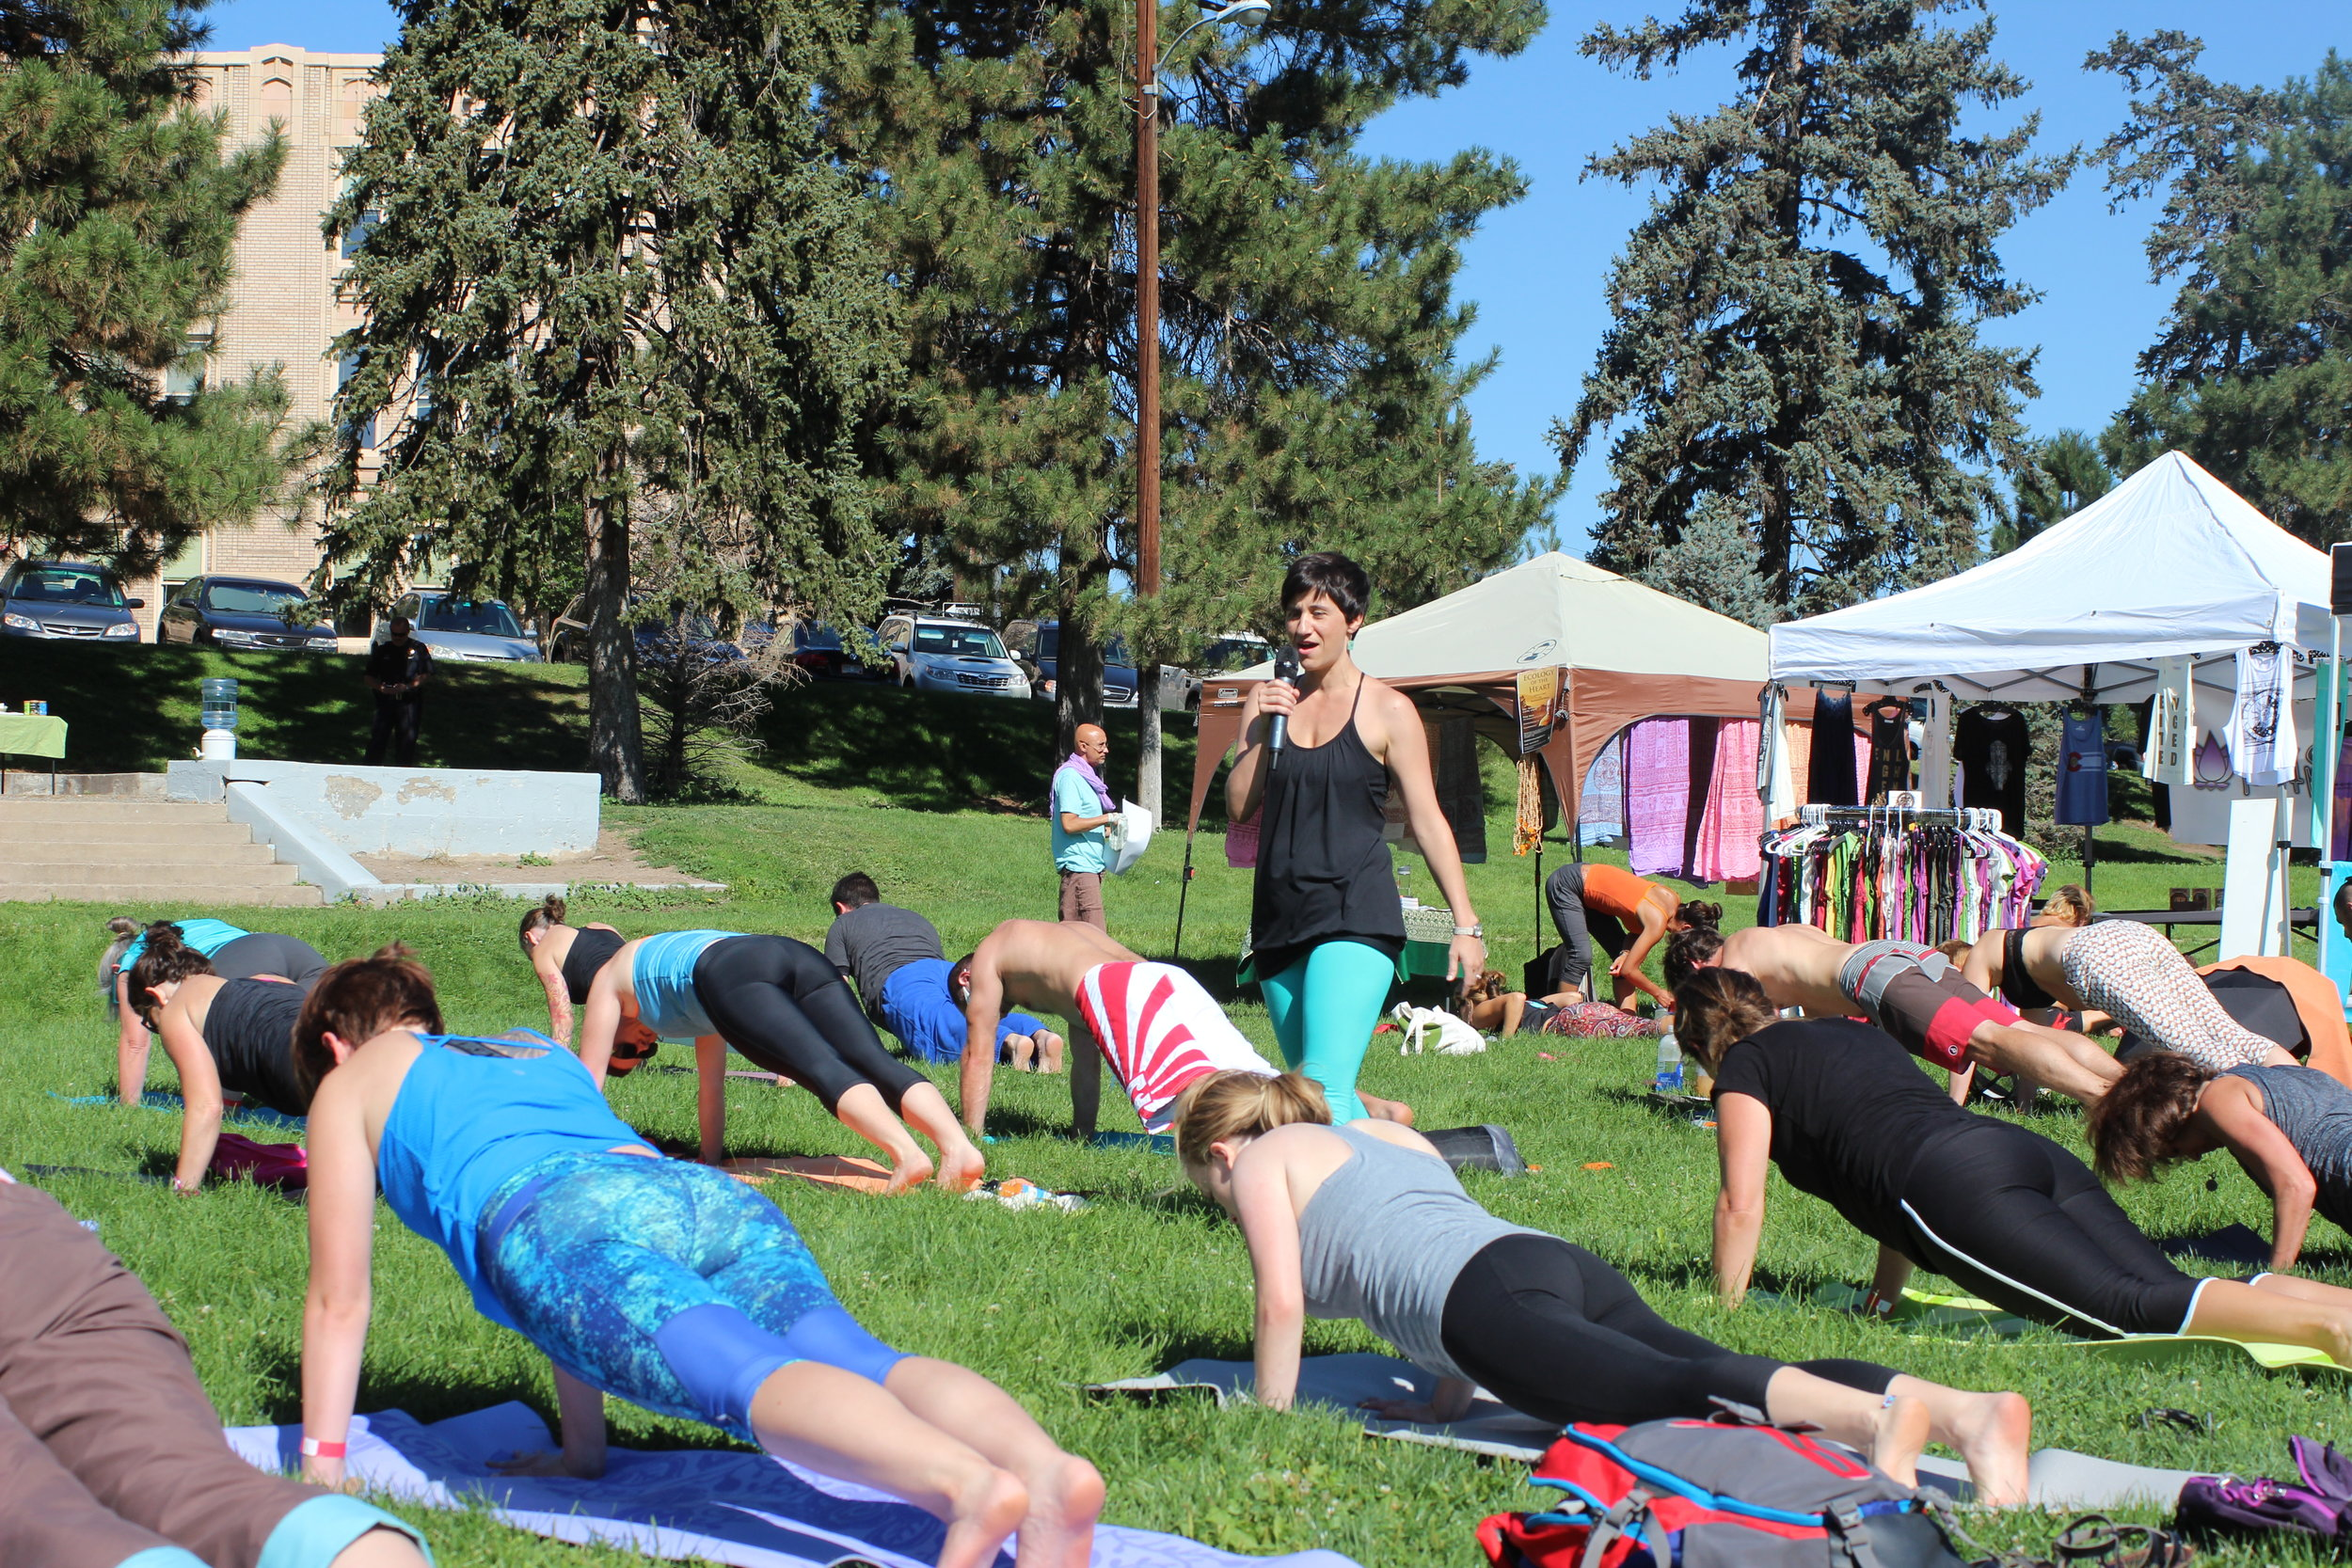 Workshops - Deepen your practice and understanding of yoga philosophy, postures, and more with a live workshop.